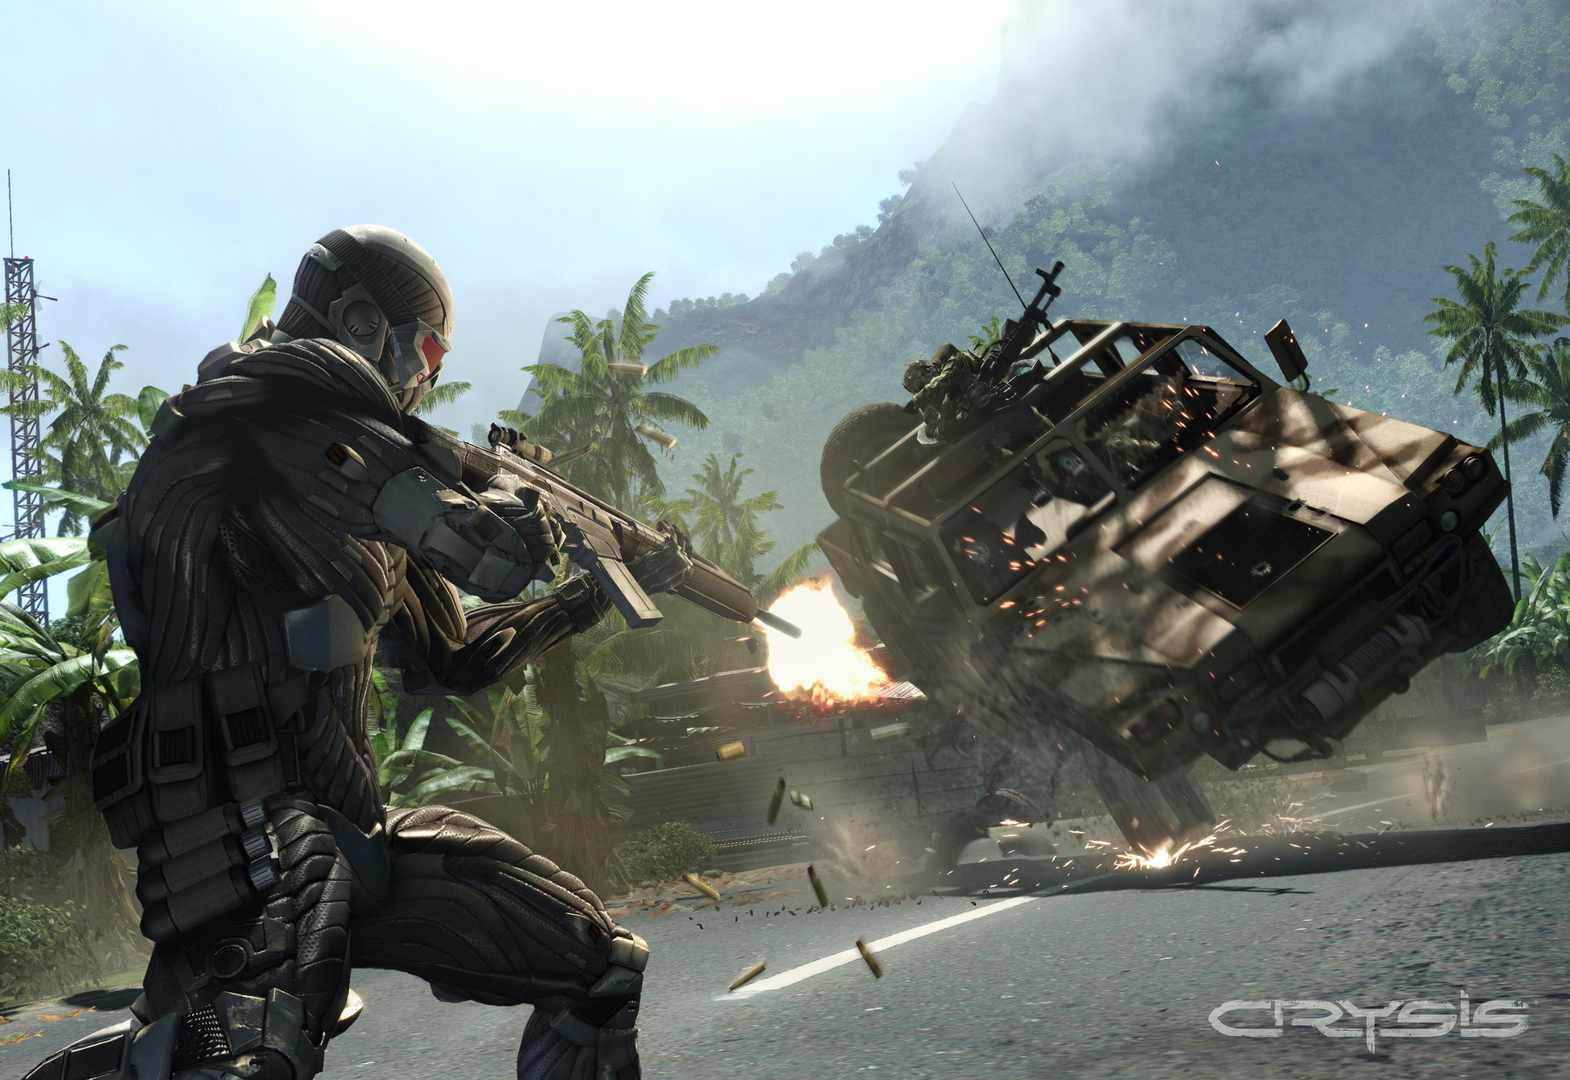 crysis 1 game free download full version pc